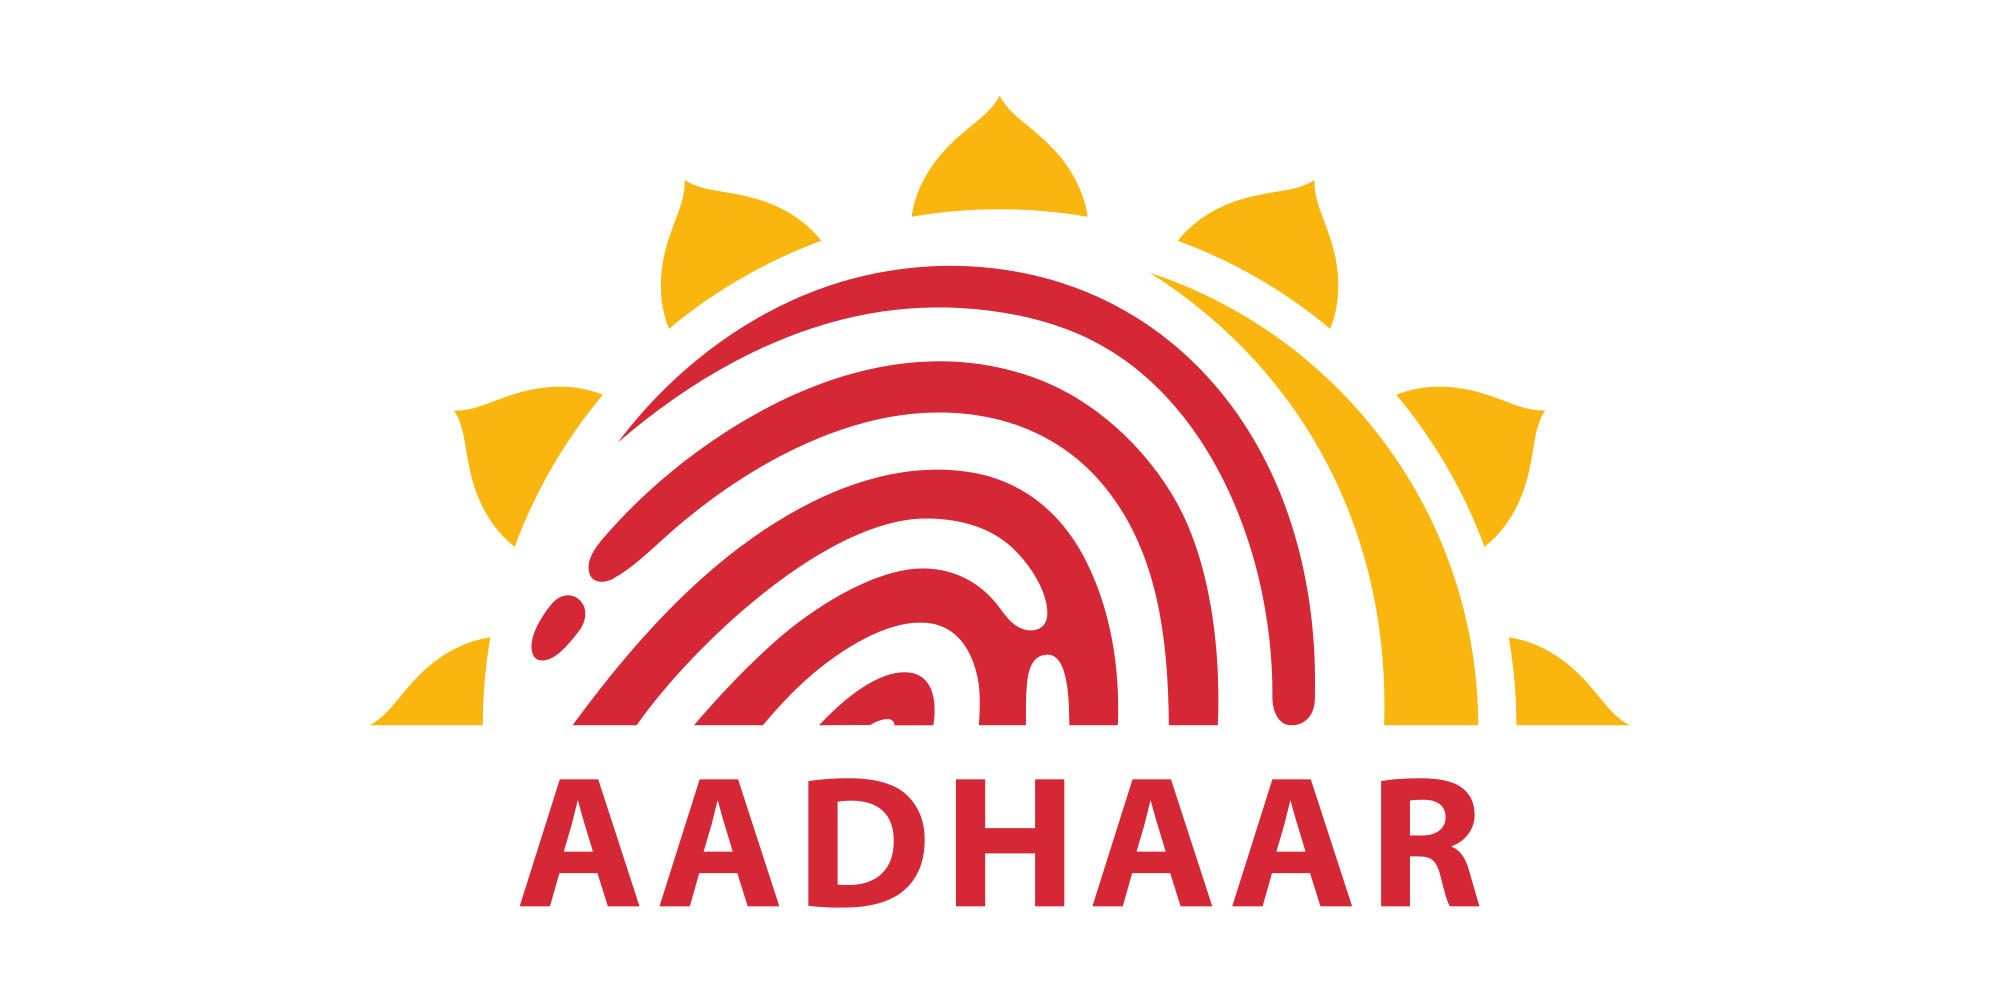 Aadhaar Pay Expected To Launch Next Week Initially In Partnership